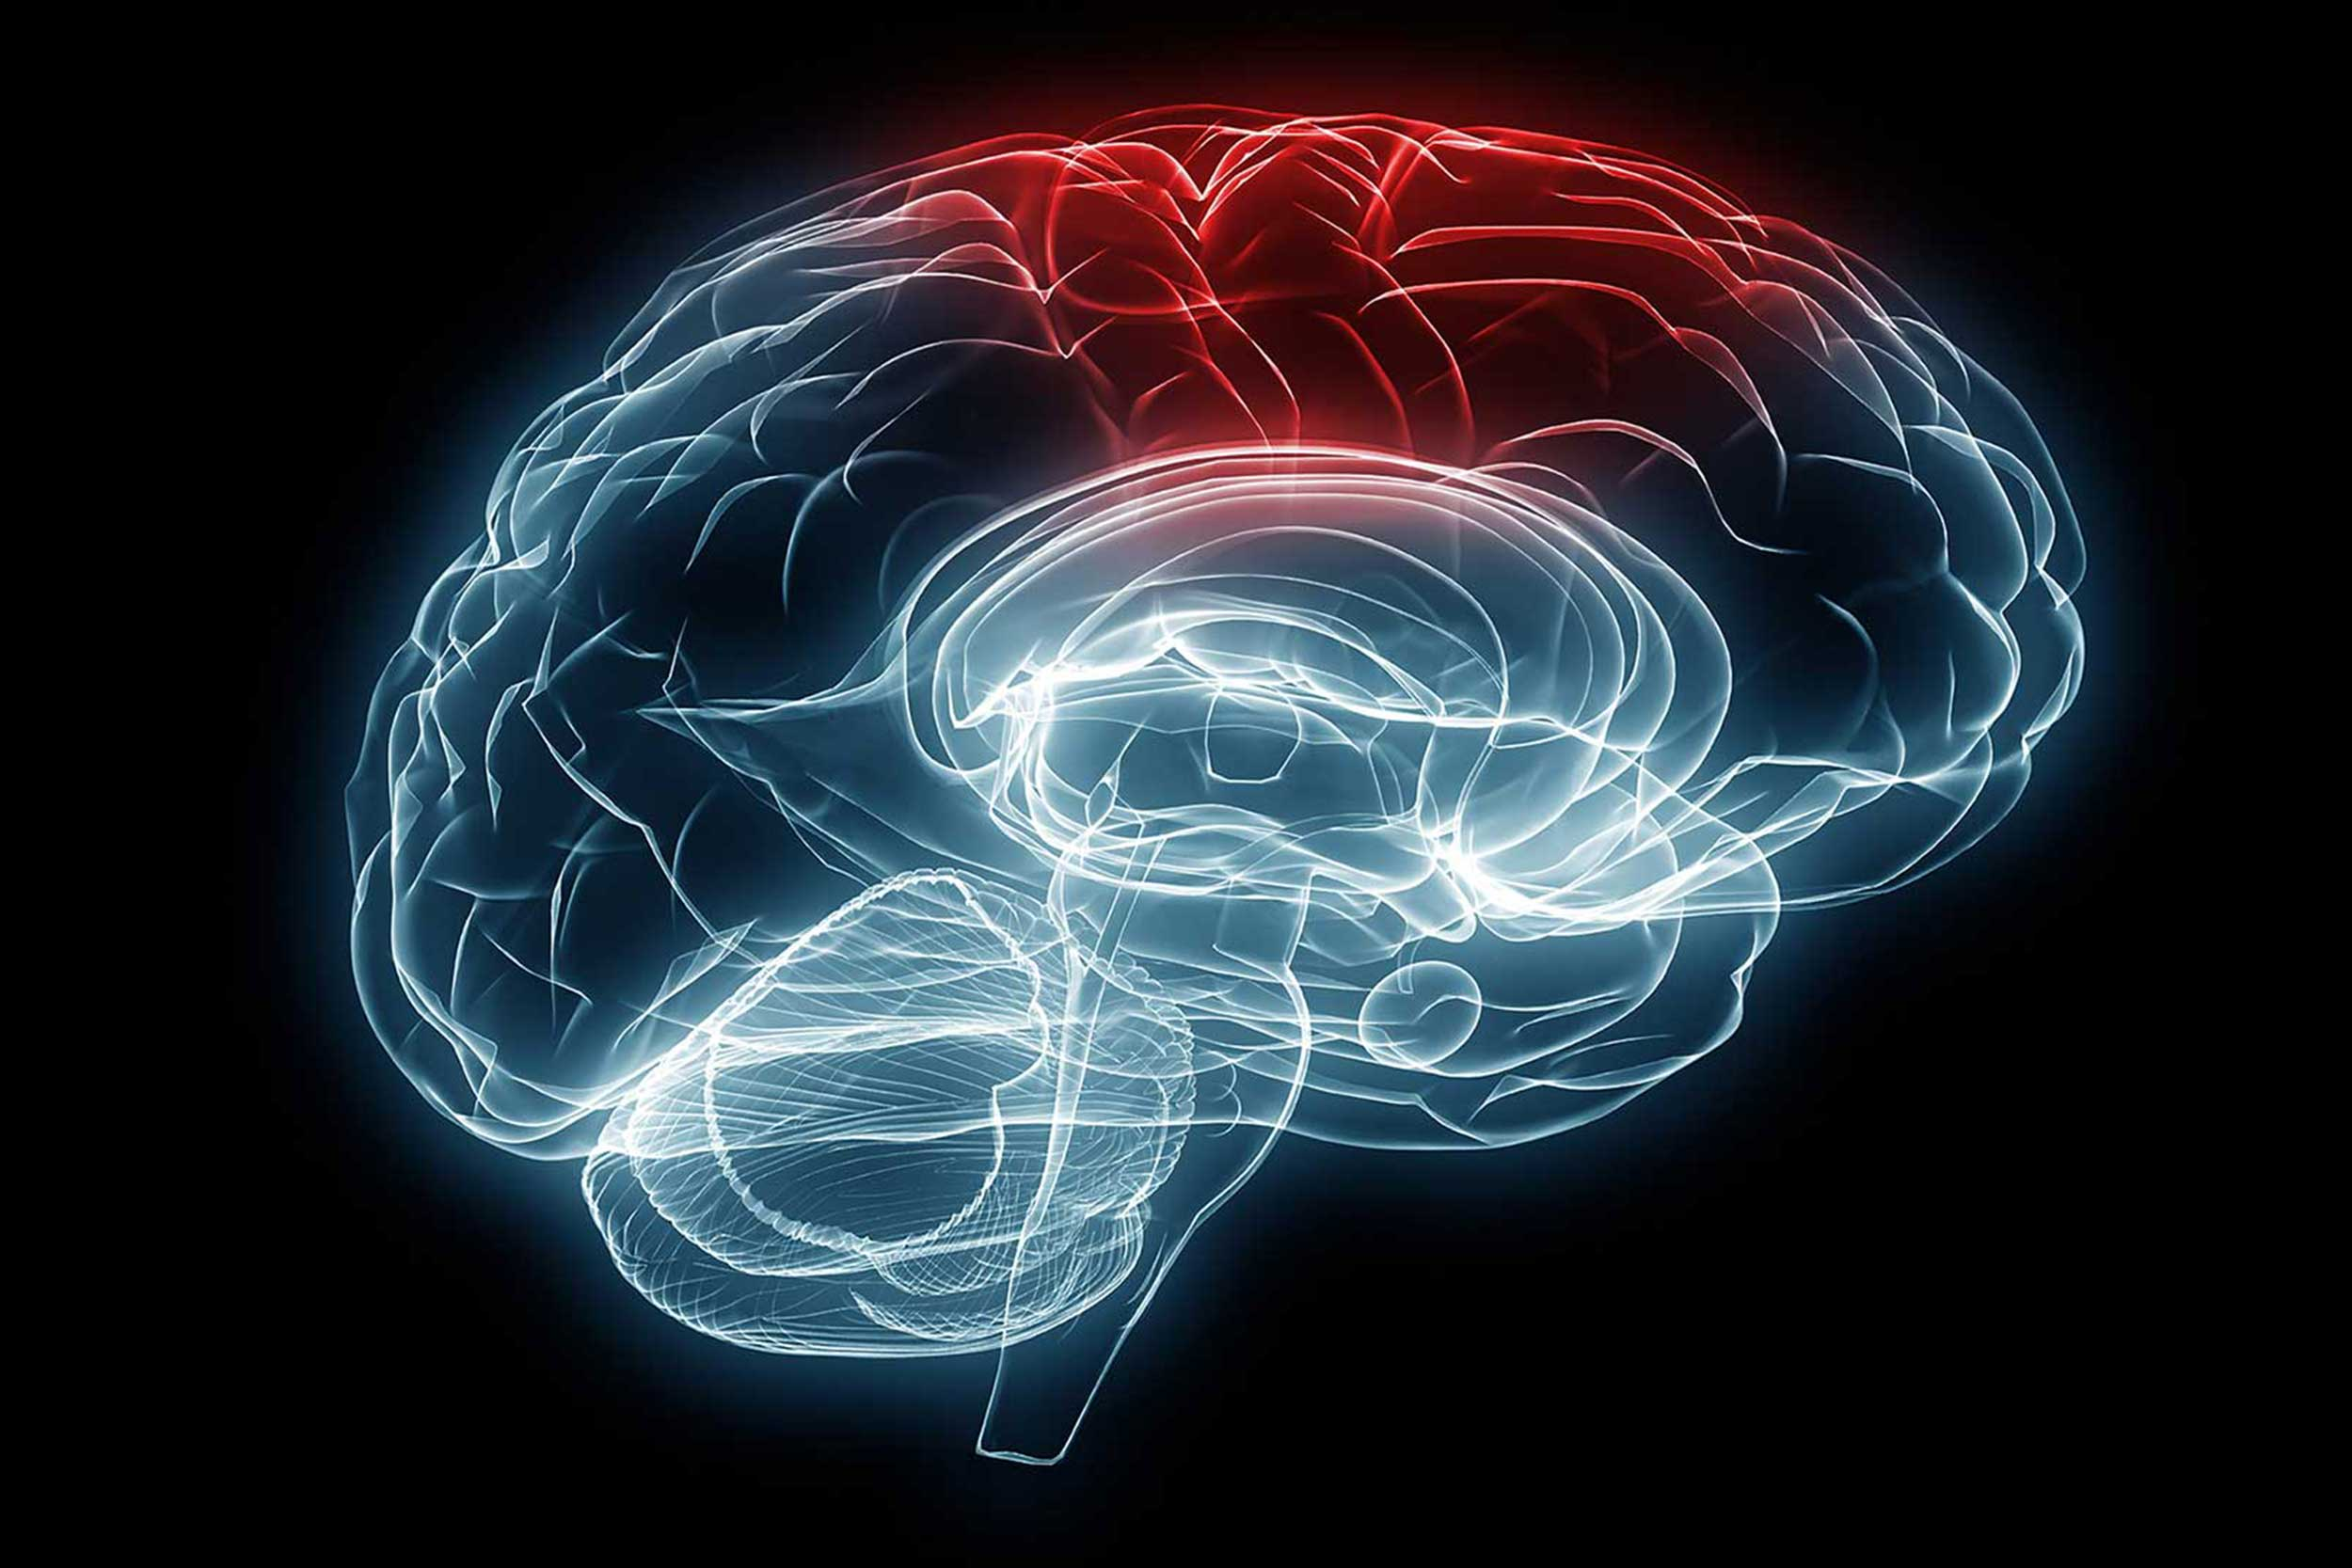 Stylized outline graphic of a human brain